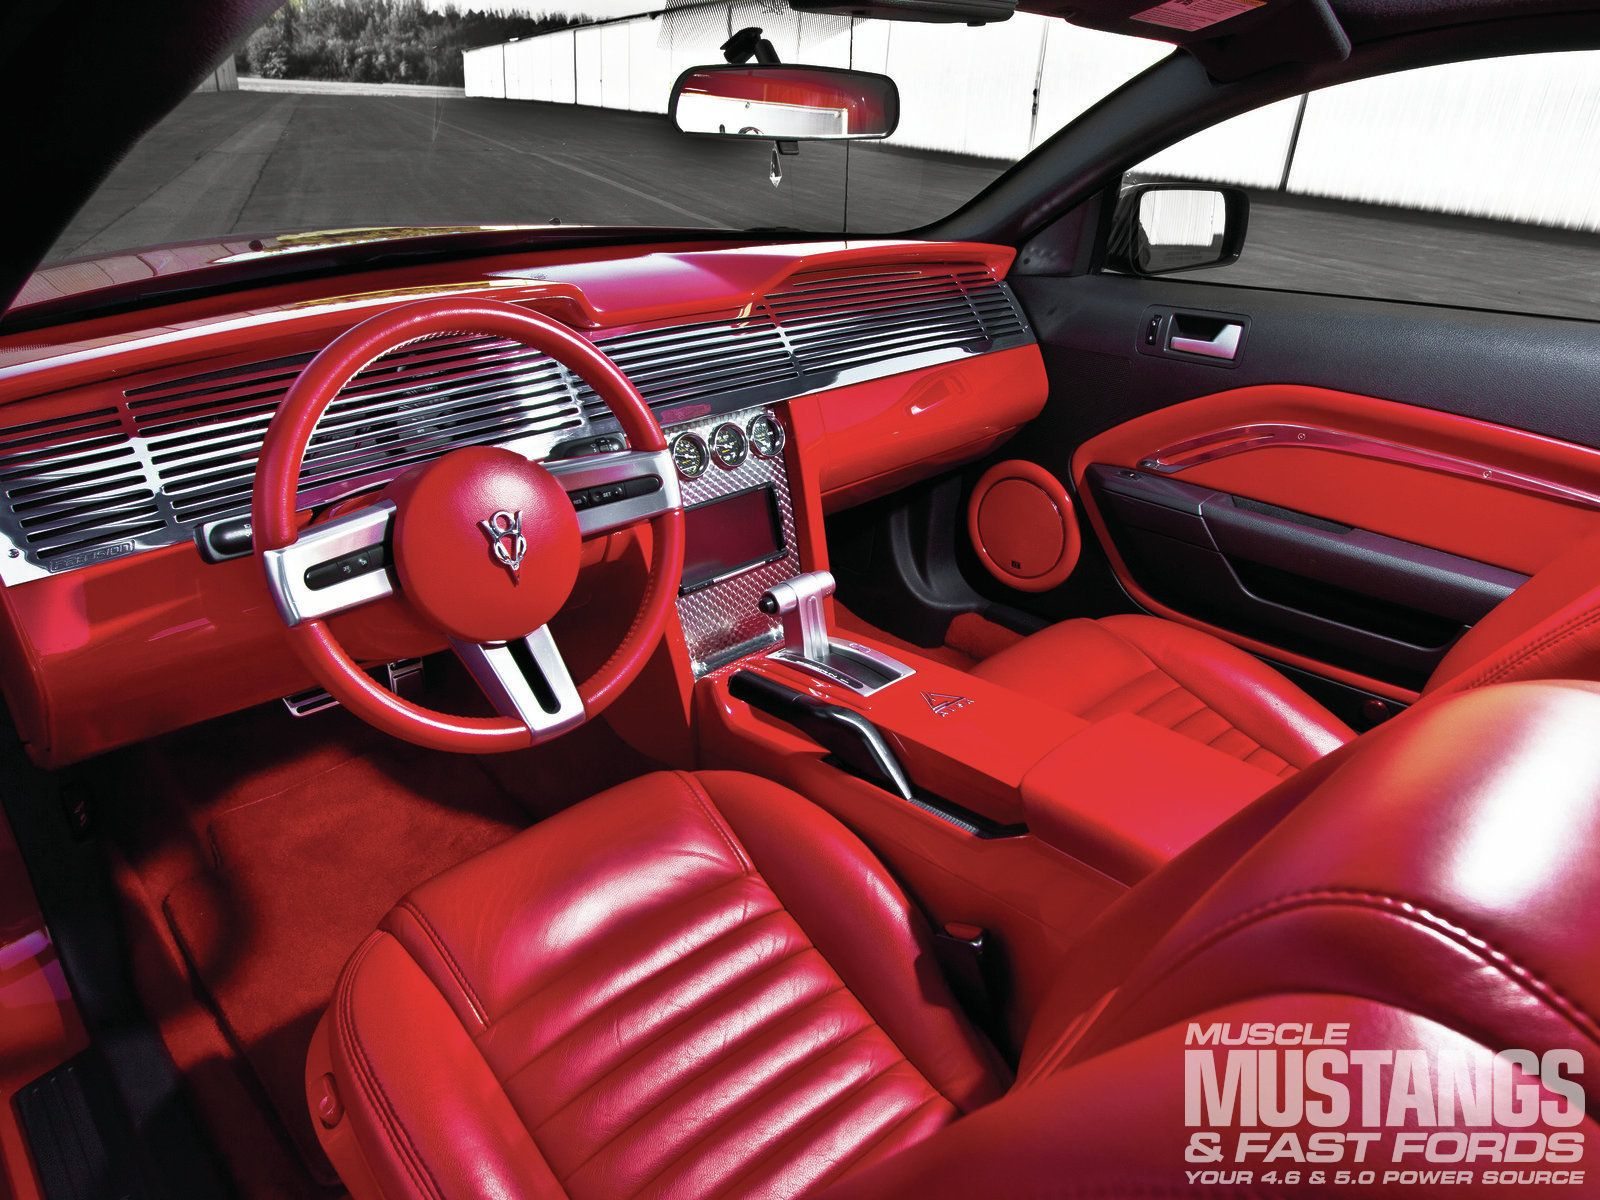 Custom mustang interior 2006 ford mustang gt interior interesting things pinterest 2006 - Interior ford mustang ...